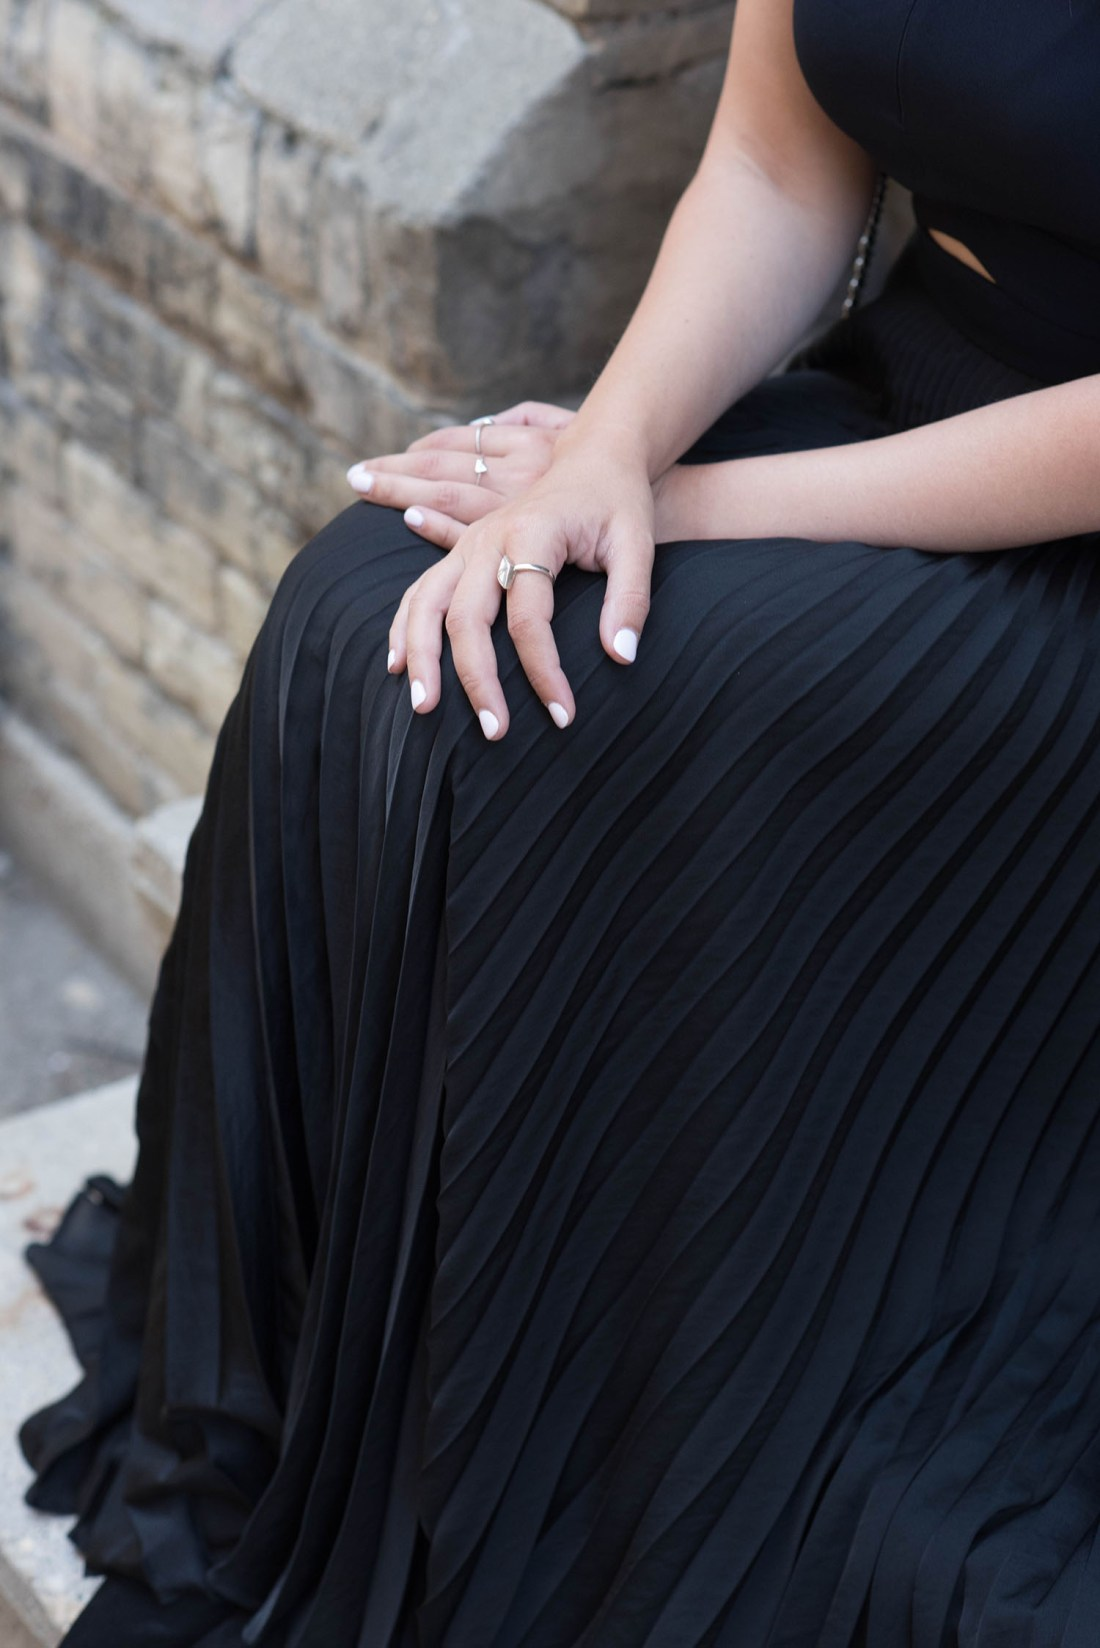 Outfit details on fashion blogger Cee Fardoe of Coco & Vera, including an ALC pleated black dress and Keltie Leanne Designs mirror ring